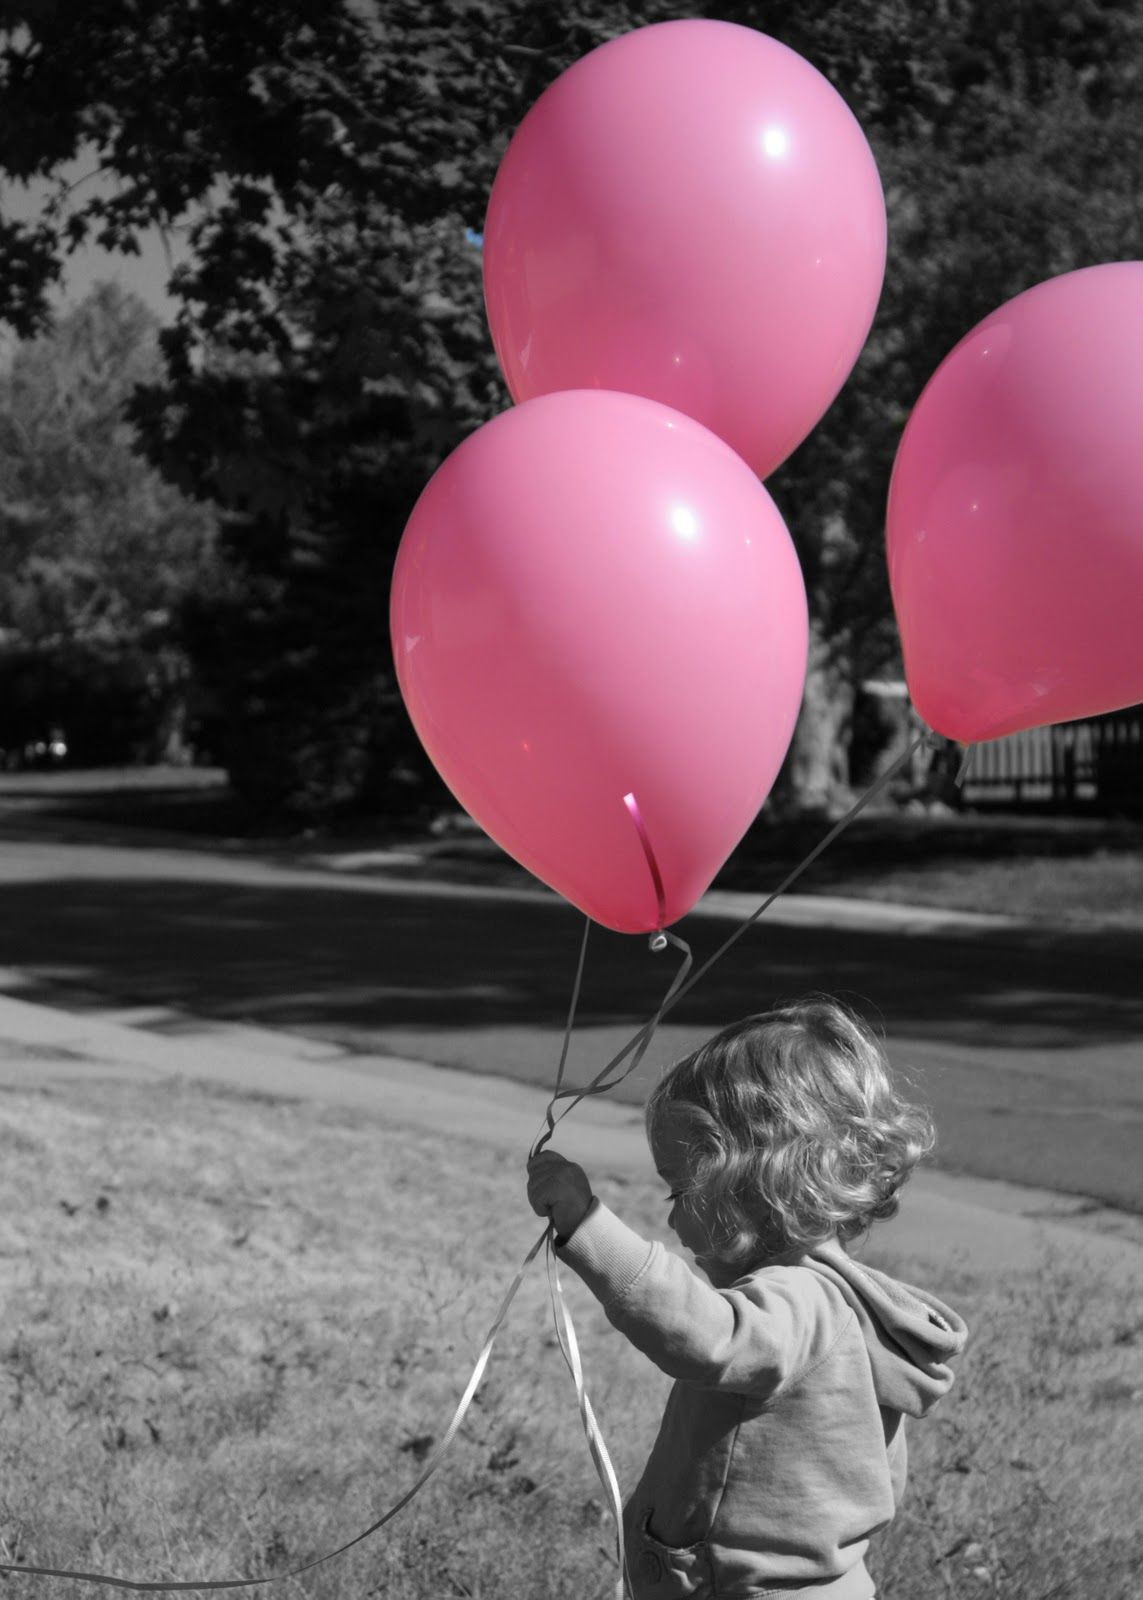 Black And White Picture With Colored Balloons Photography Poses - Black and white photography with color accents